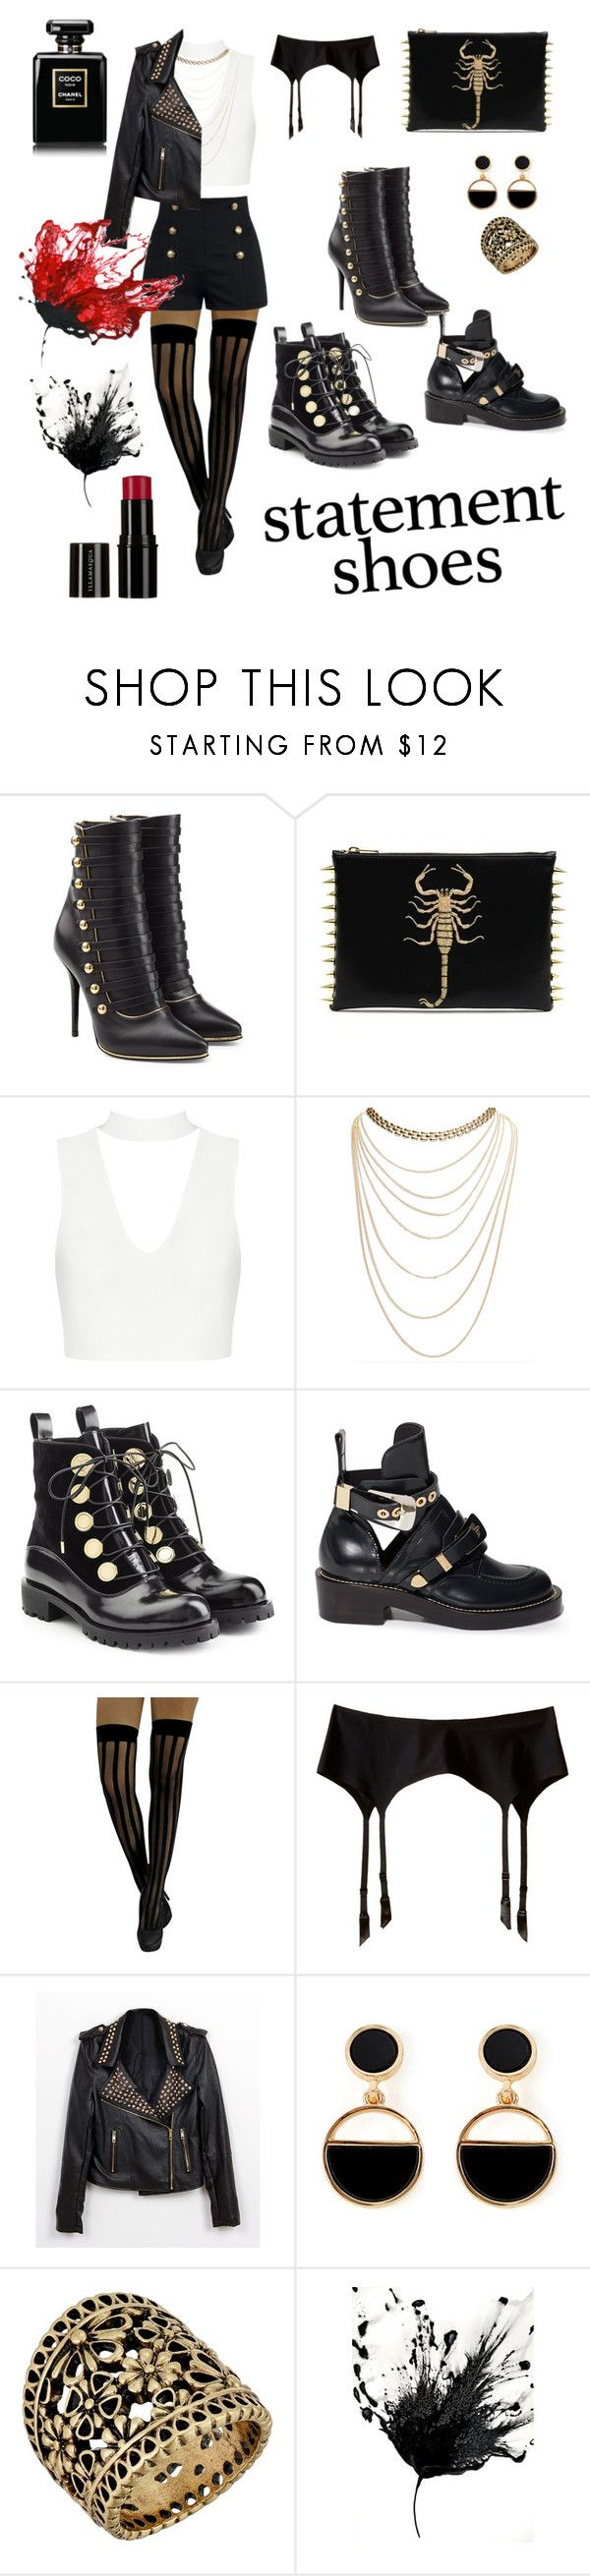 """""""statement shoes"""" by olga-horohonova ❤ liked on Polyvore featuring Balmain, Wet Seal, Alexander McQueen, Balenciaga, Wolford, Warehouse and Lucky Brand"""